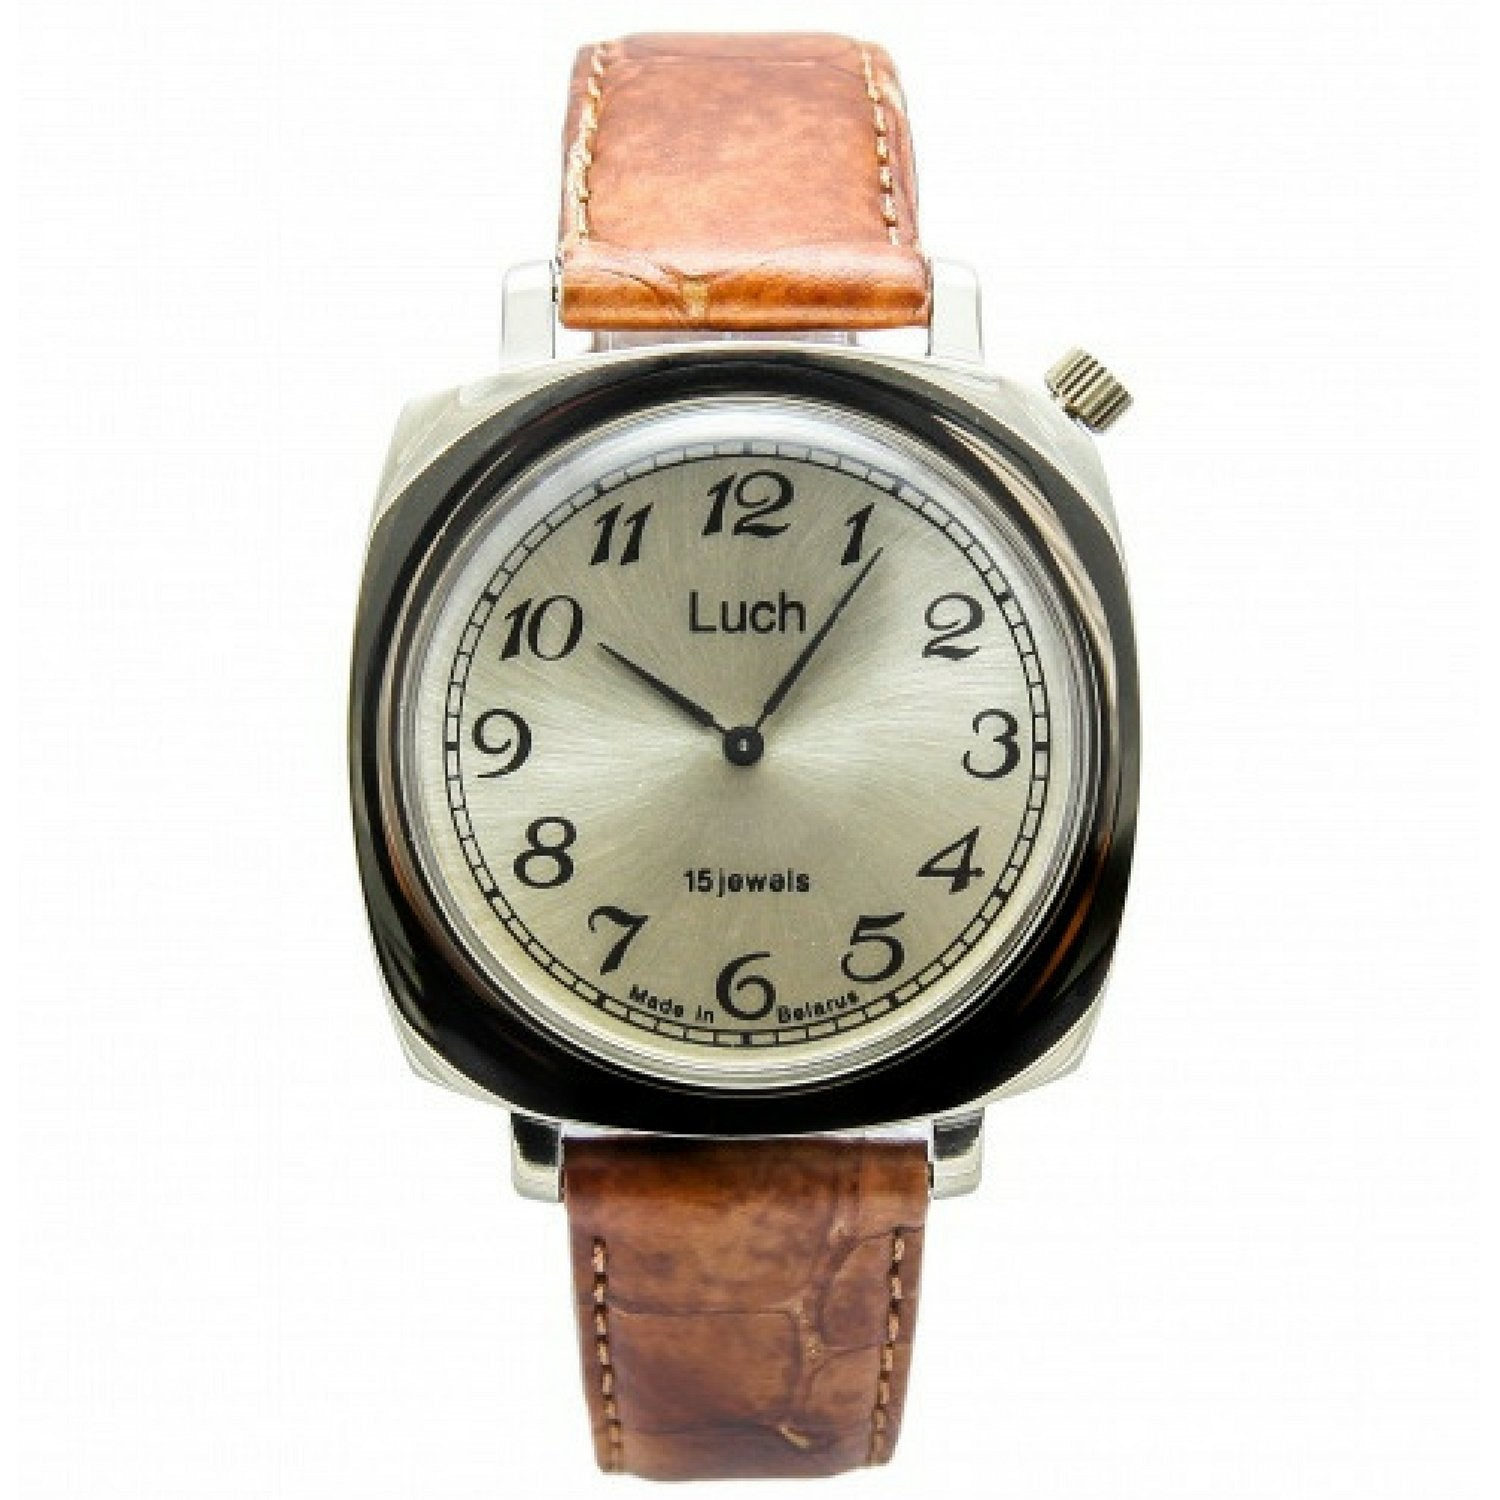 Luch Handwinding Watch - 337587249